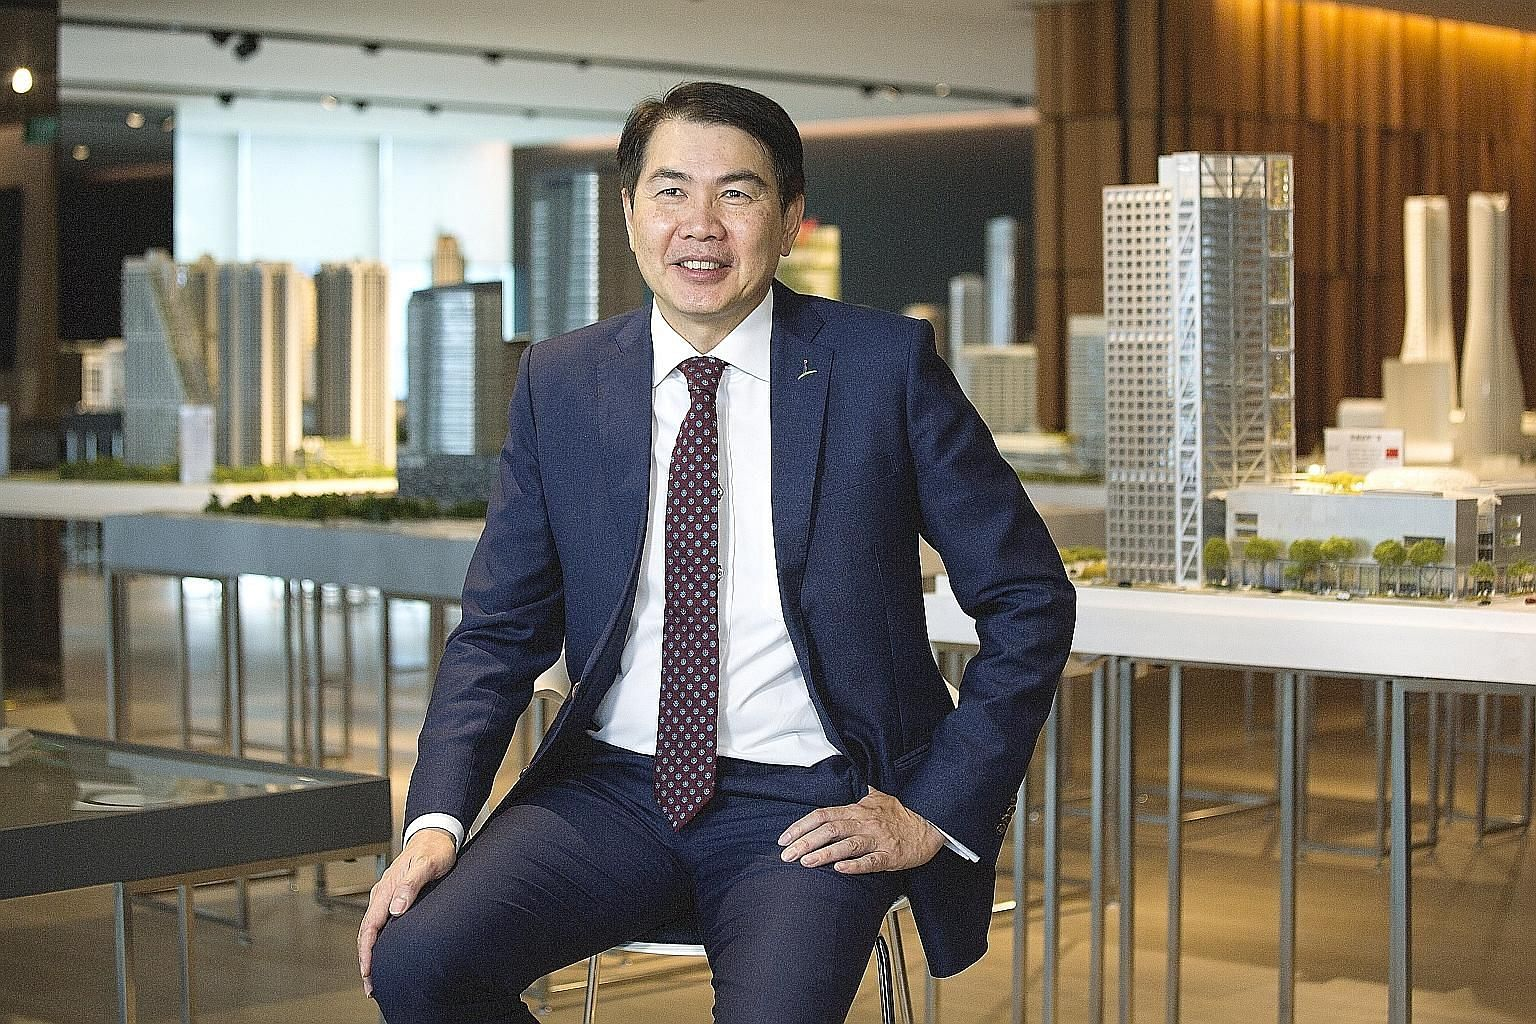 Mr Lim Ming Yan, CapitaLand's president and chief executive, told Bloomberg TV he had detected signs private home prices were bottoming out after years of price falls.